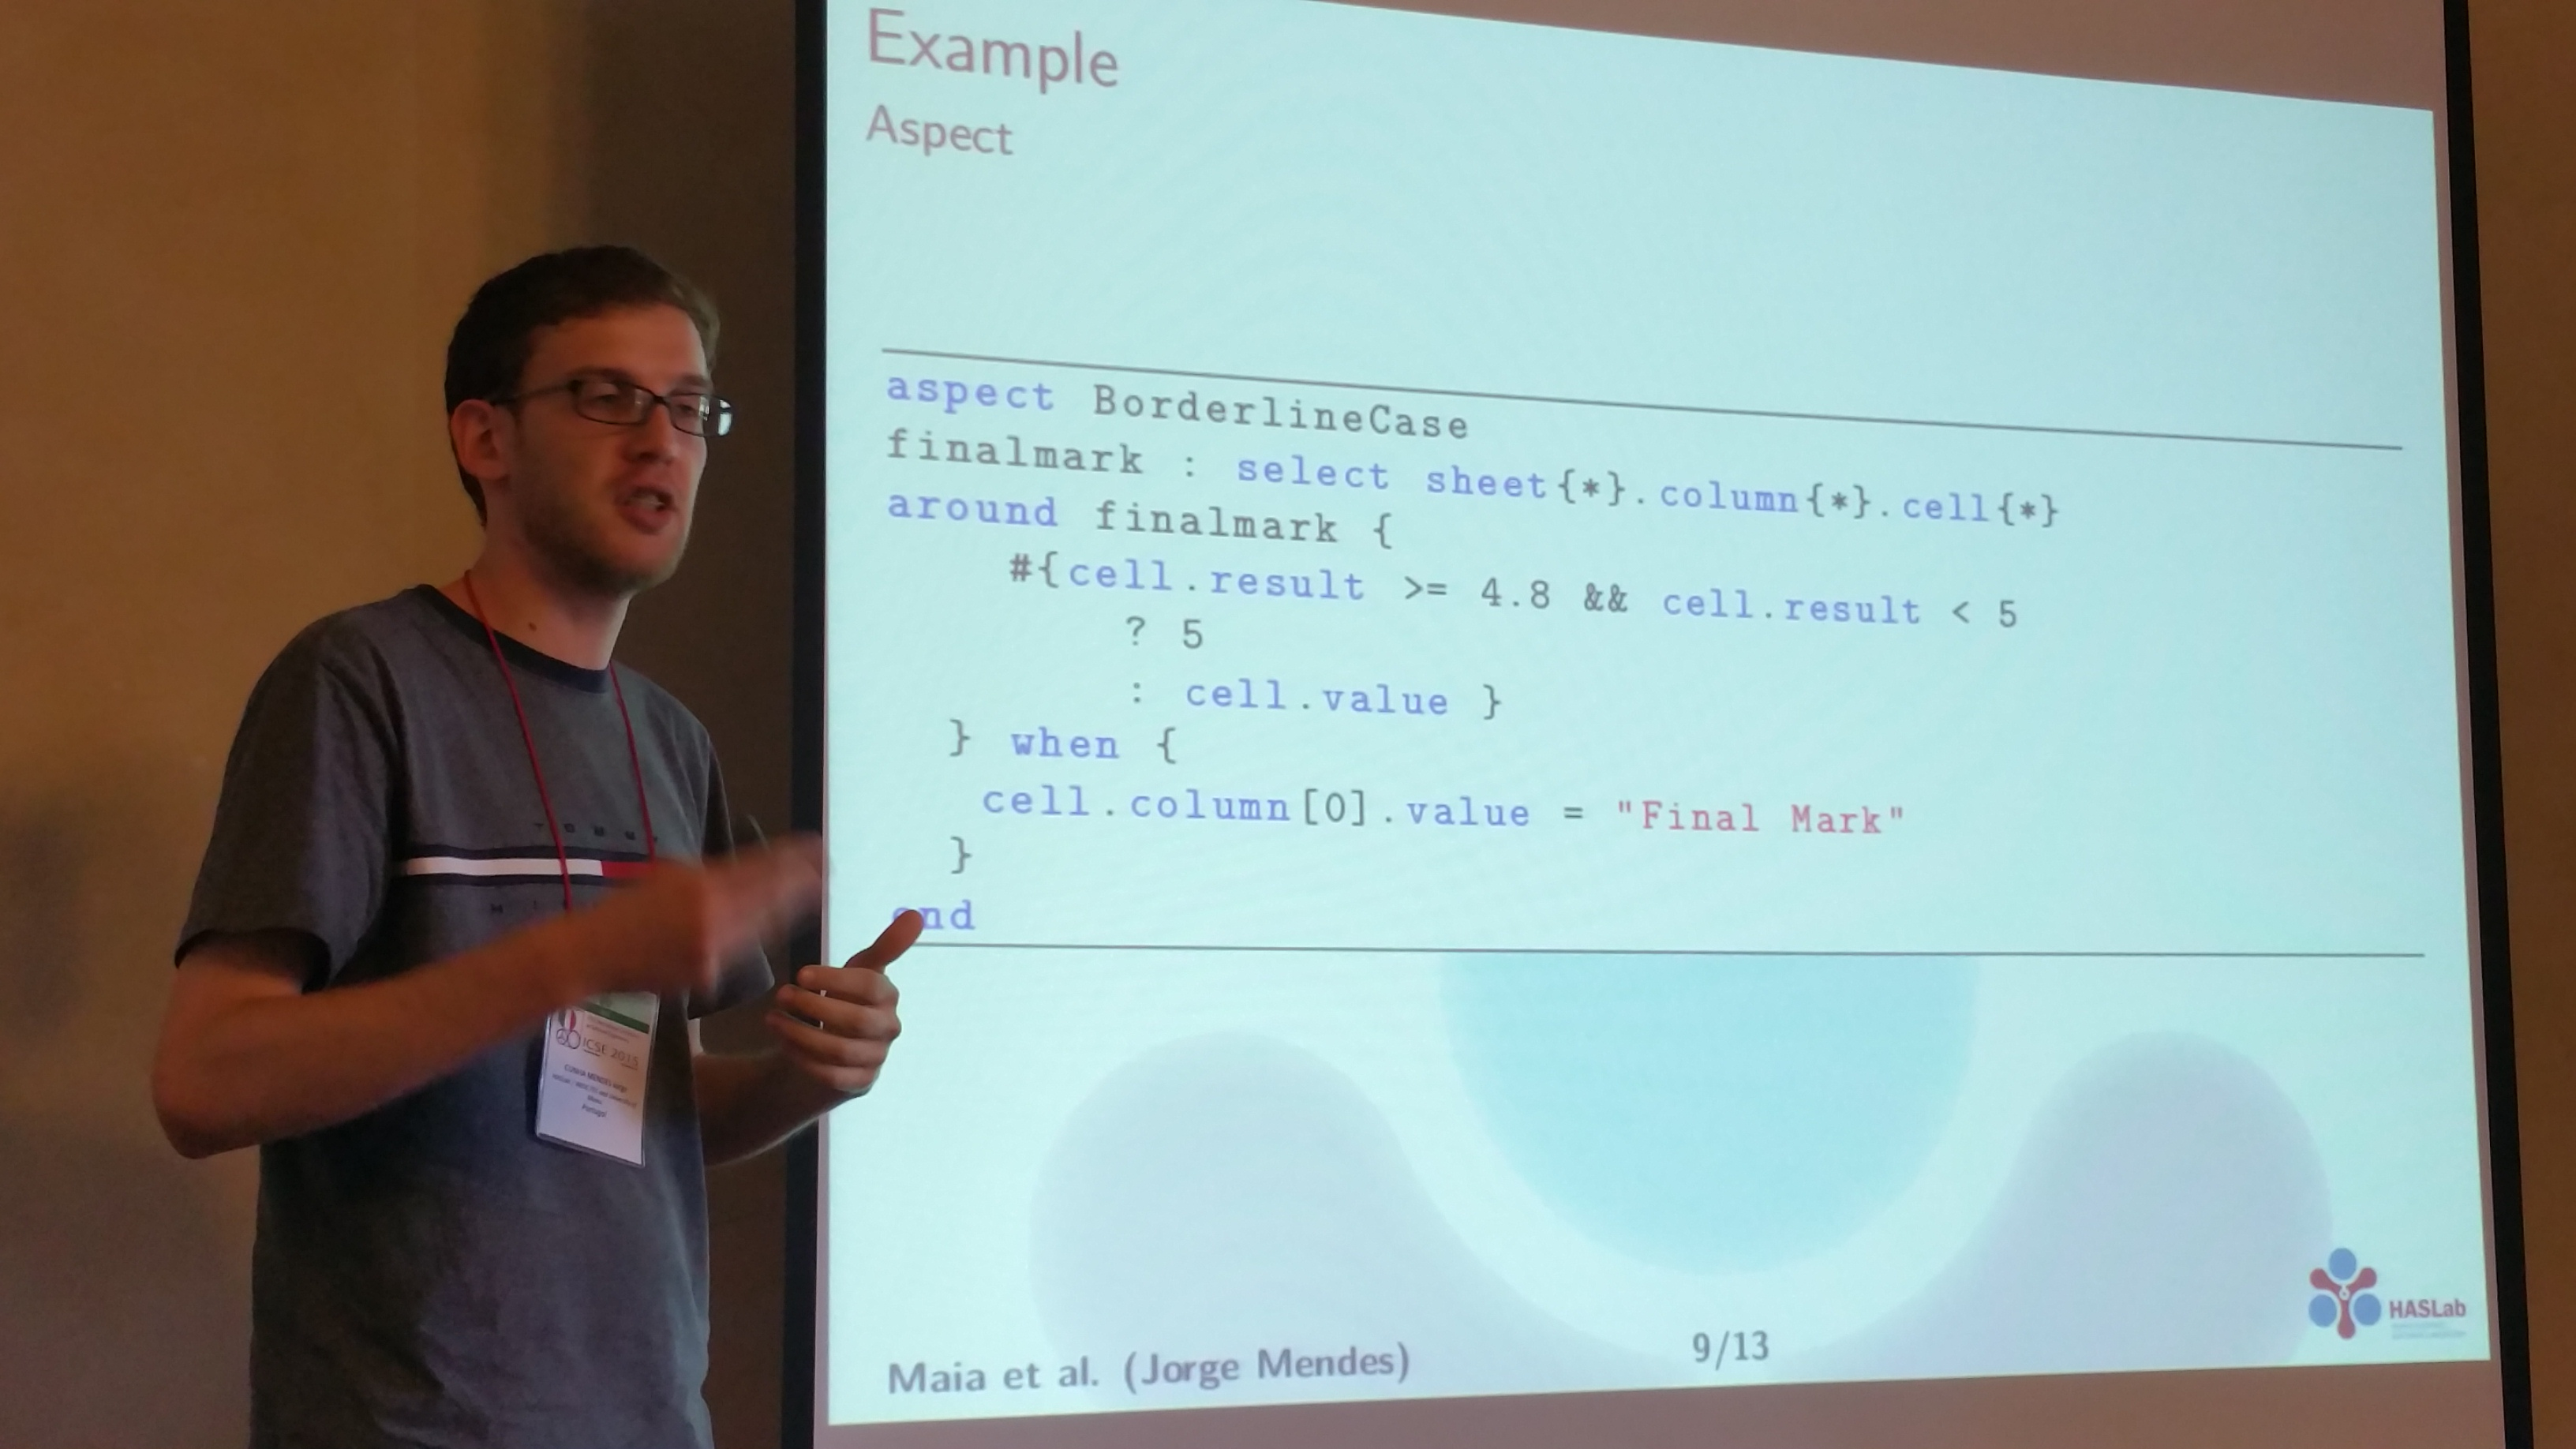 Towards The Design And Implementation Of Aspect Oriented Programming For Spreadsheets Jorge Mendes